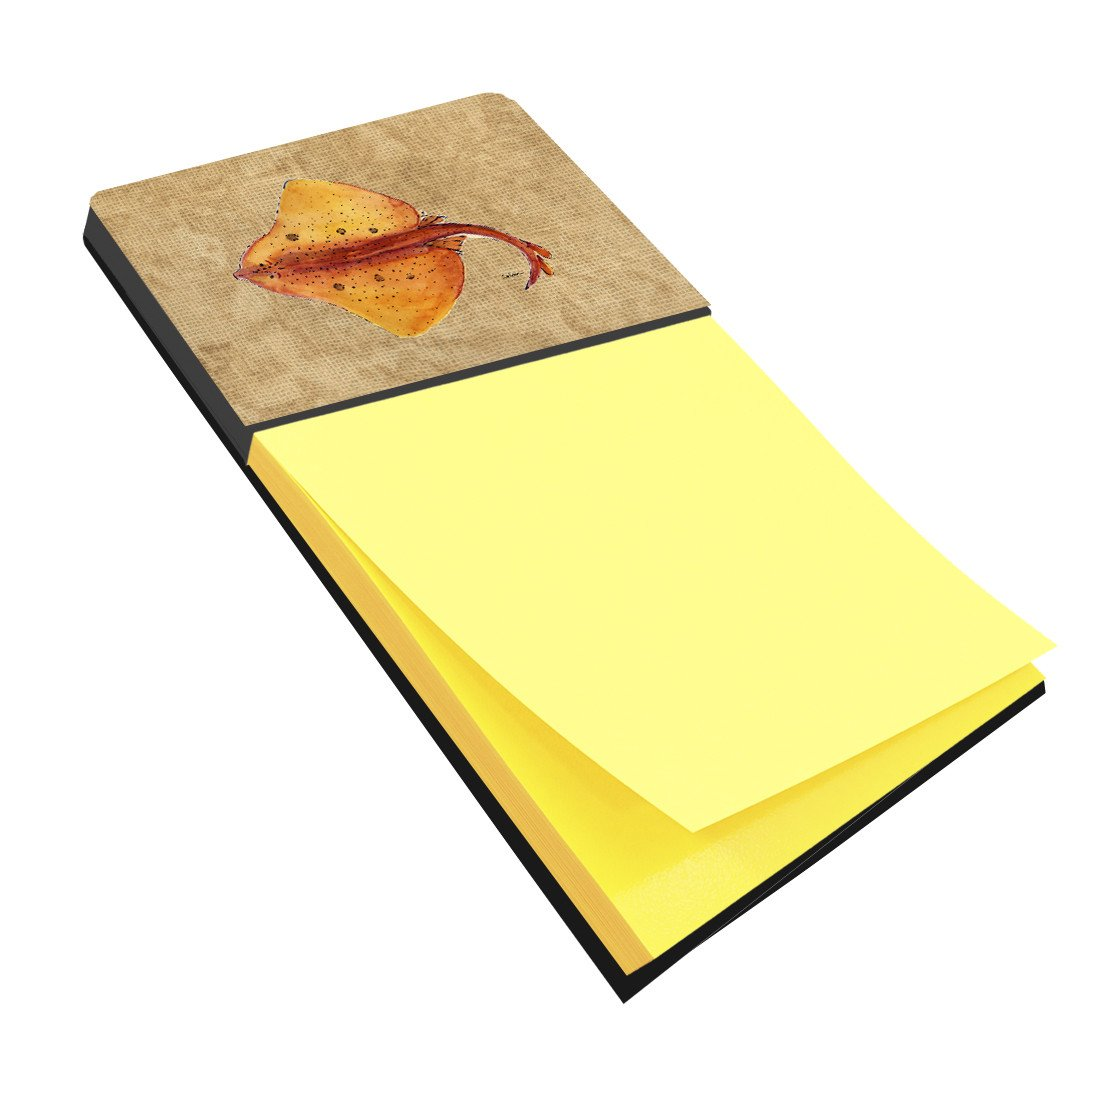 Blonde Ray Stingray Refiillable Sticky Note Holder or Postit Note Dispenser 8815SN by Caroline's Treasures